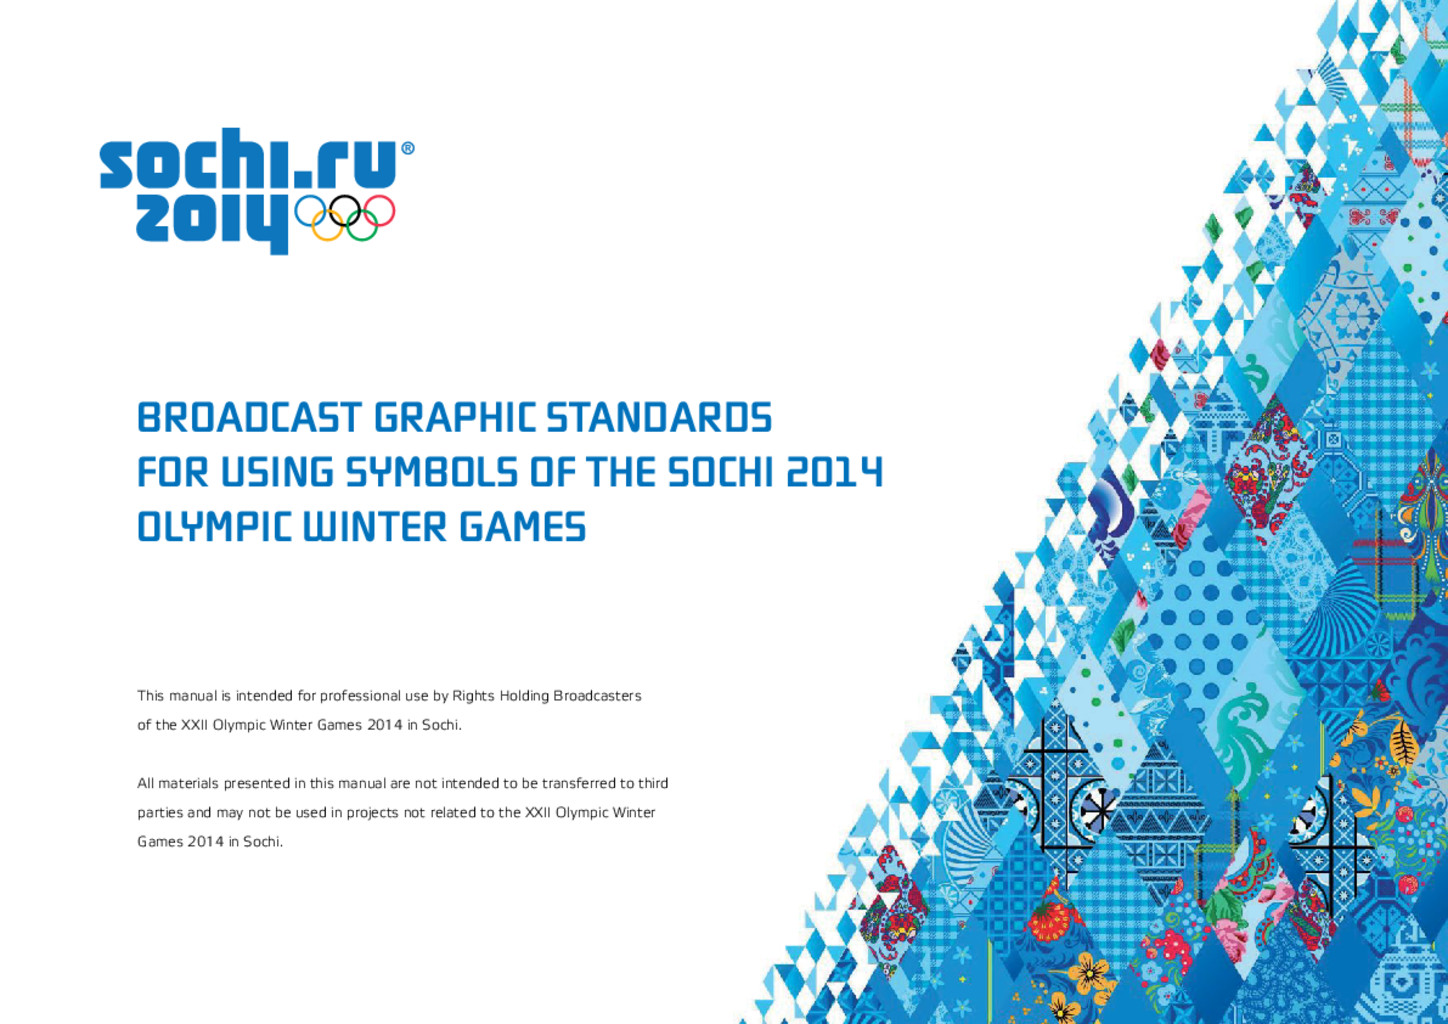 Broadcast graphic standards for using symbols of the Sochi 2014 Olympic Winter Games / Organizing Committee of XXII Olympic Winter Games and XI Paralympic Winter Games 2014 in Sochi | Olympic Winter Games. Organizing Committee. 22, 2014, Sochi